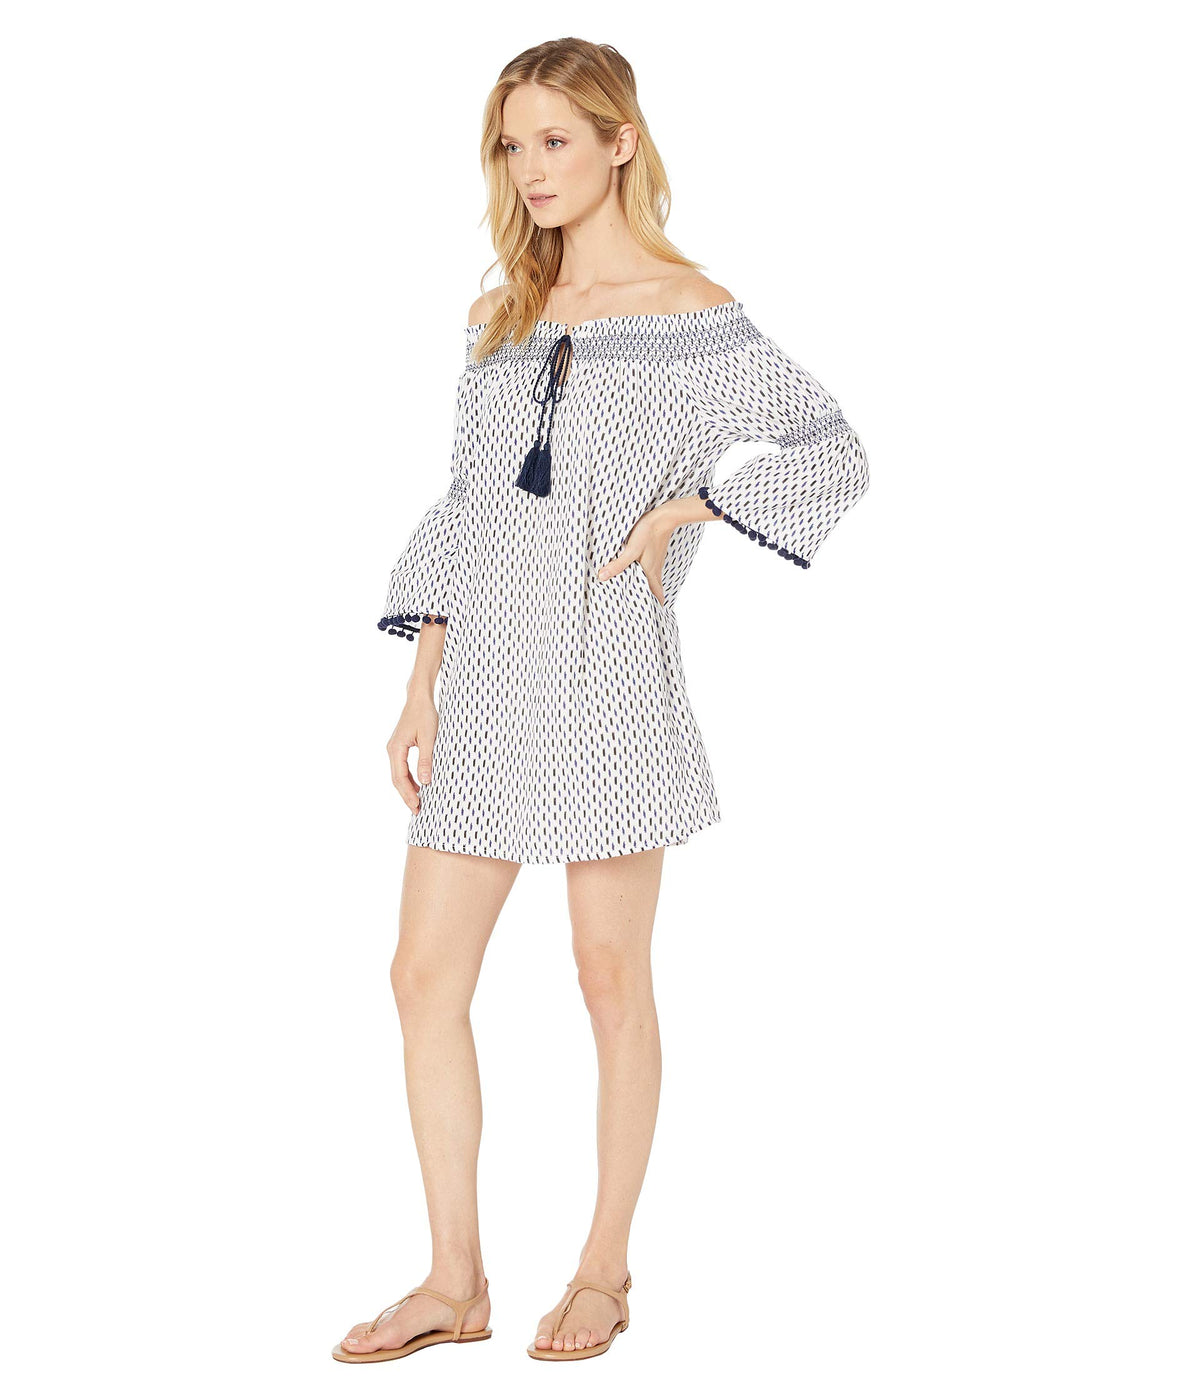 Canyon Sky Off-the-Shoulder Tunic with Fixed Ties Cover-Up